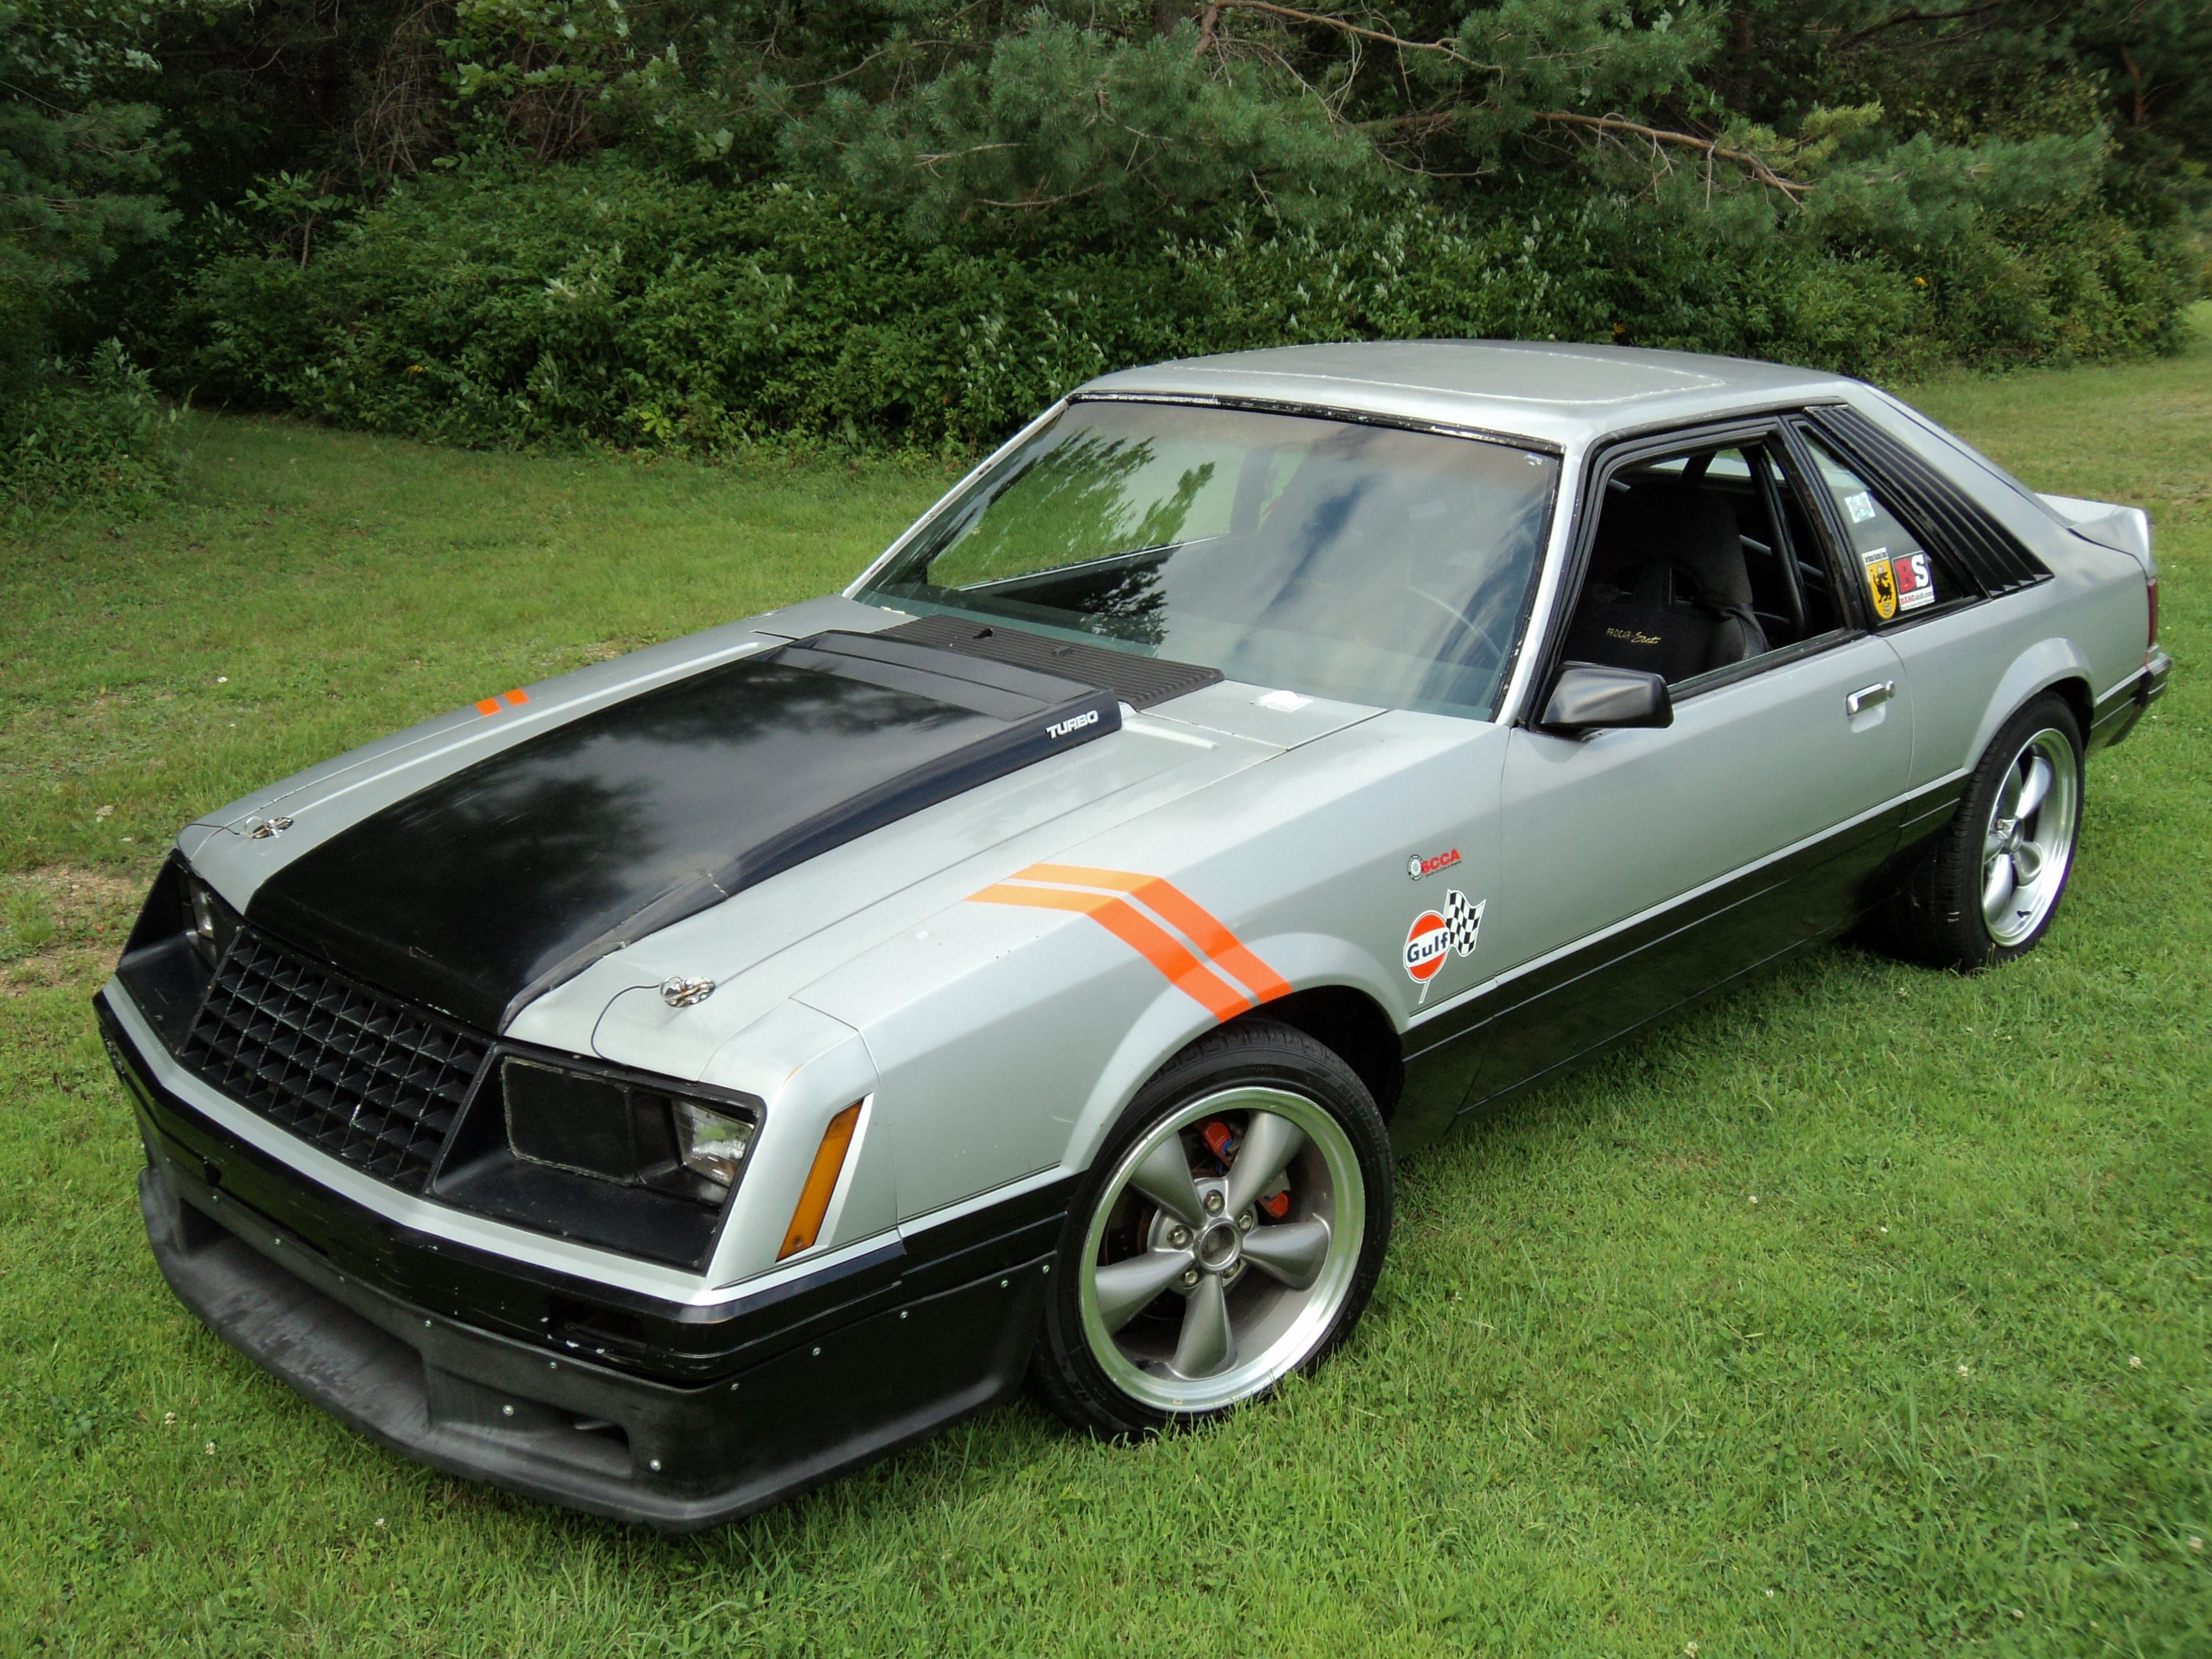 My 79 mustang indy pace car scca c prepared autocrosser 2 3l turbo 5pd